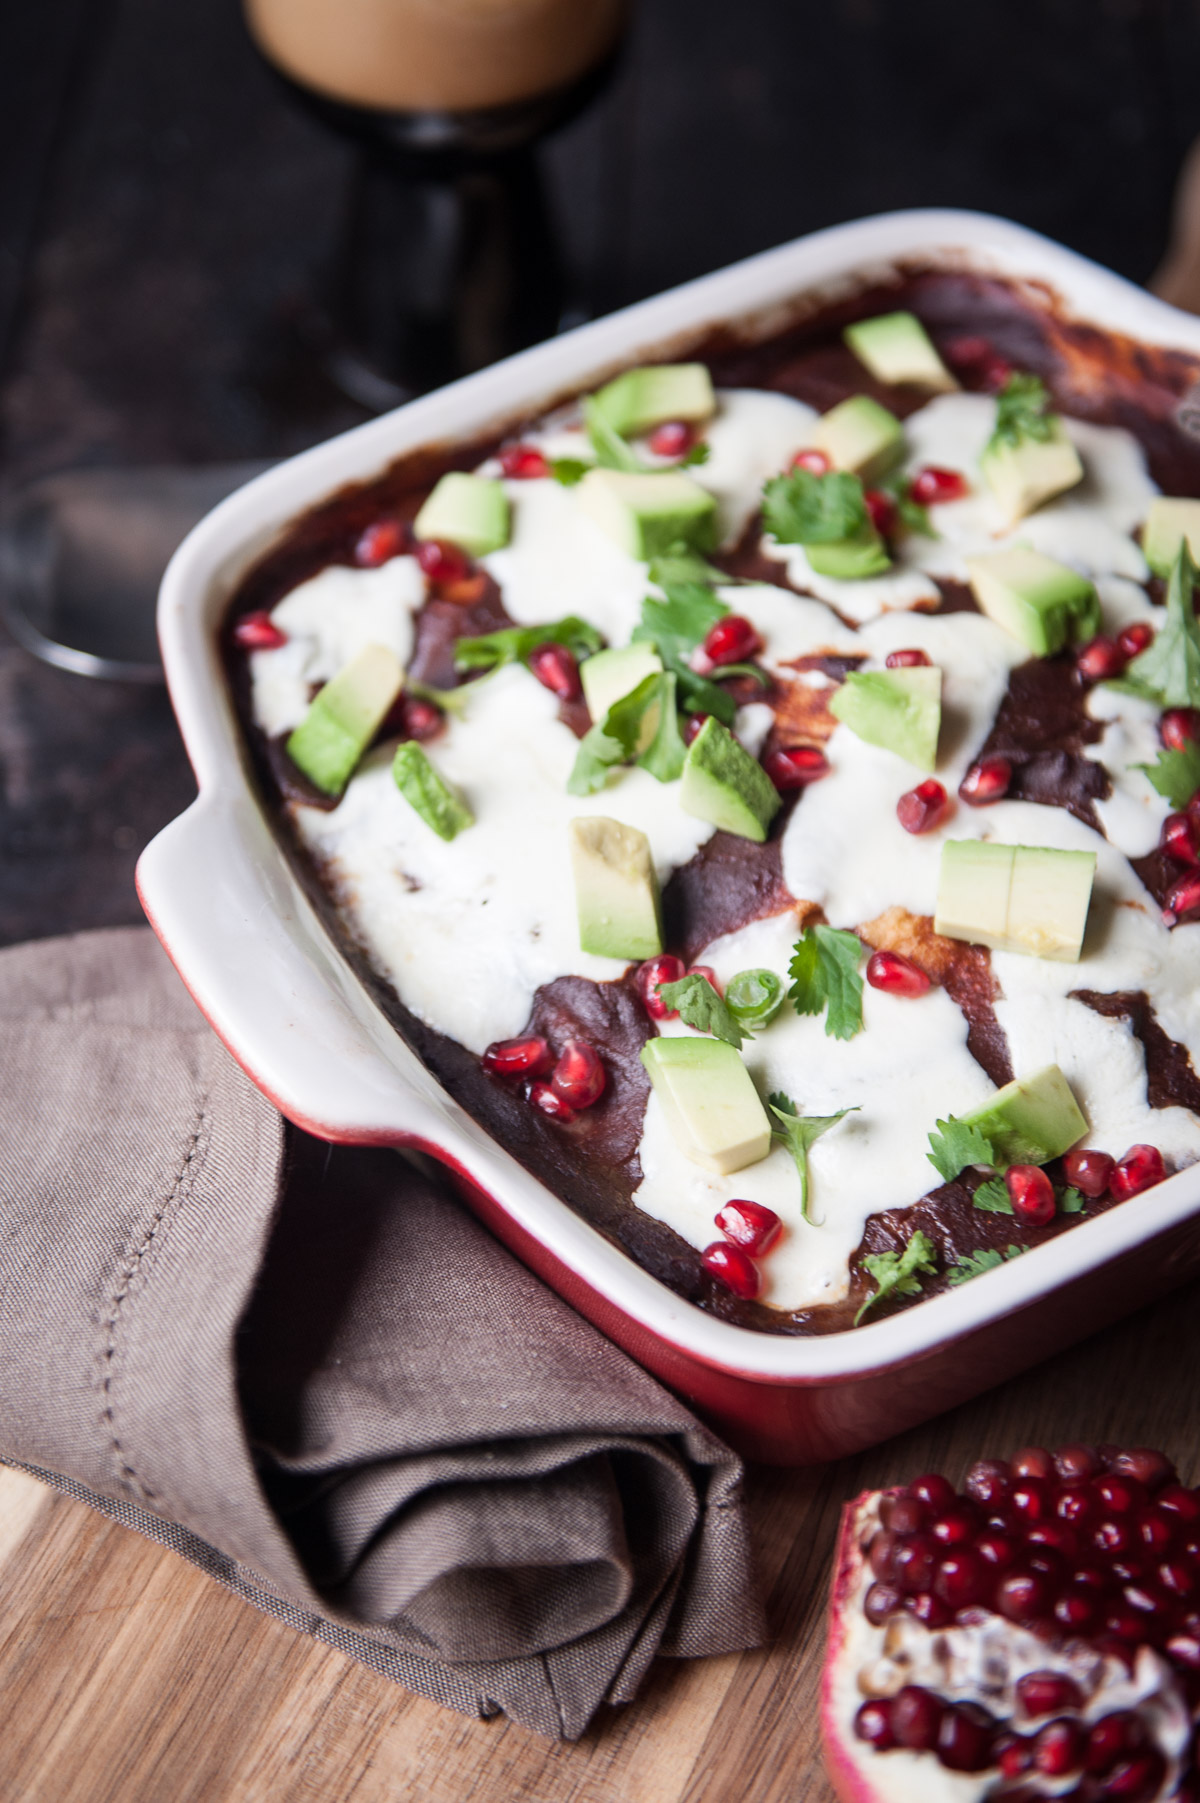 ... Enchiladas with Chipotle Stout Pomegranate Sauce - The Beeroness